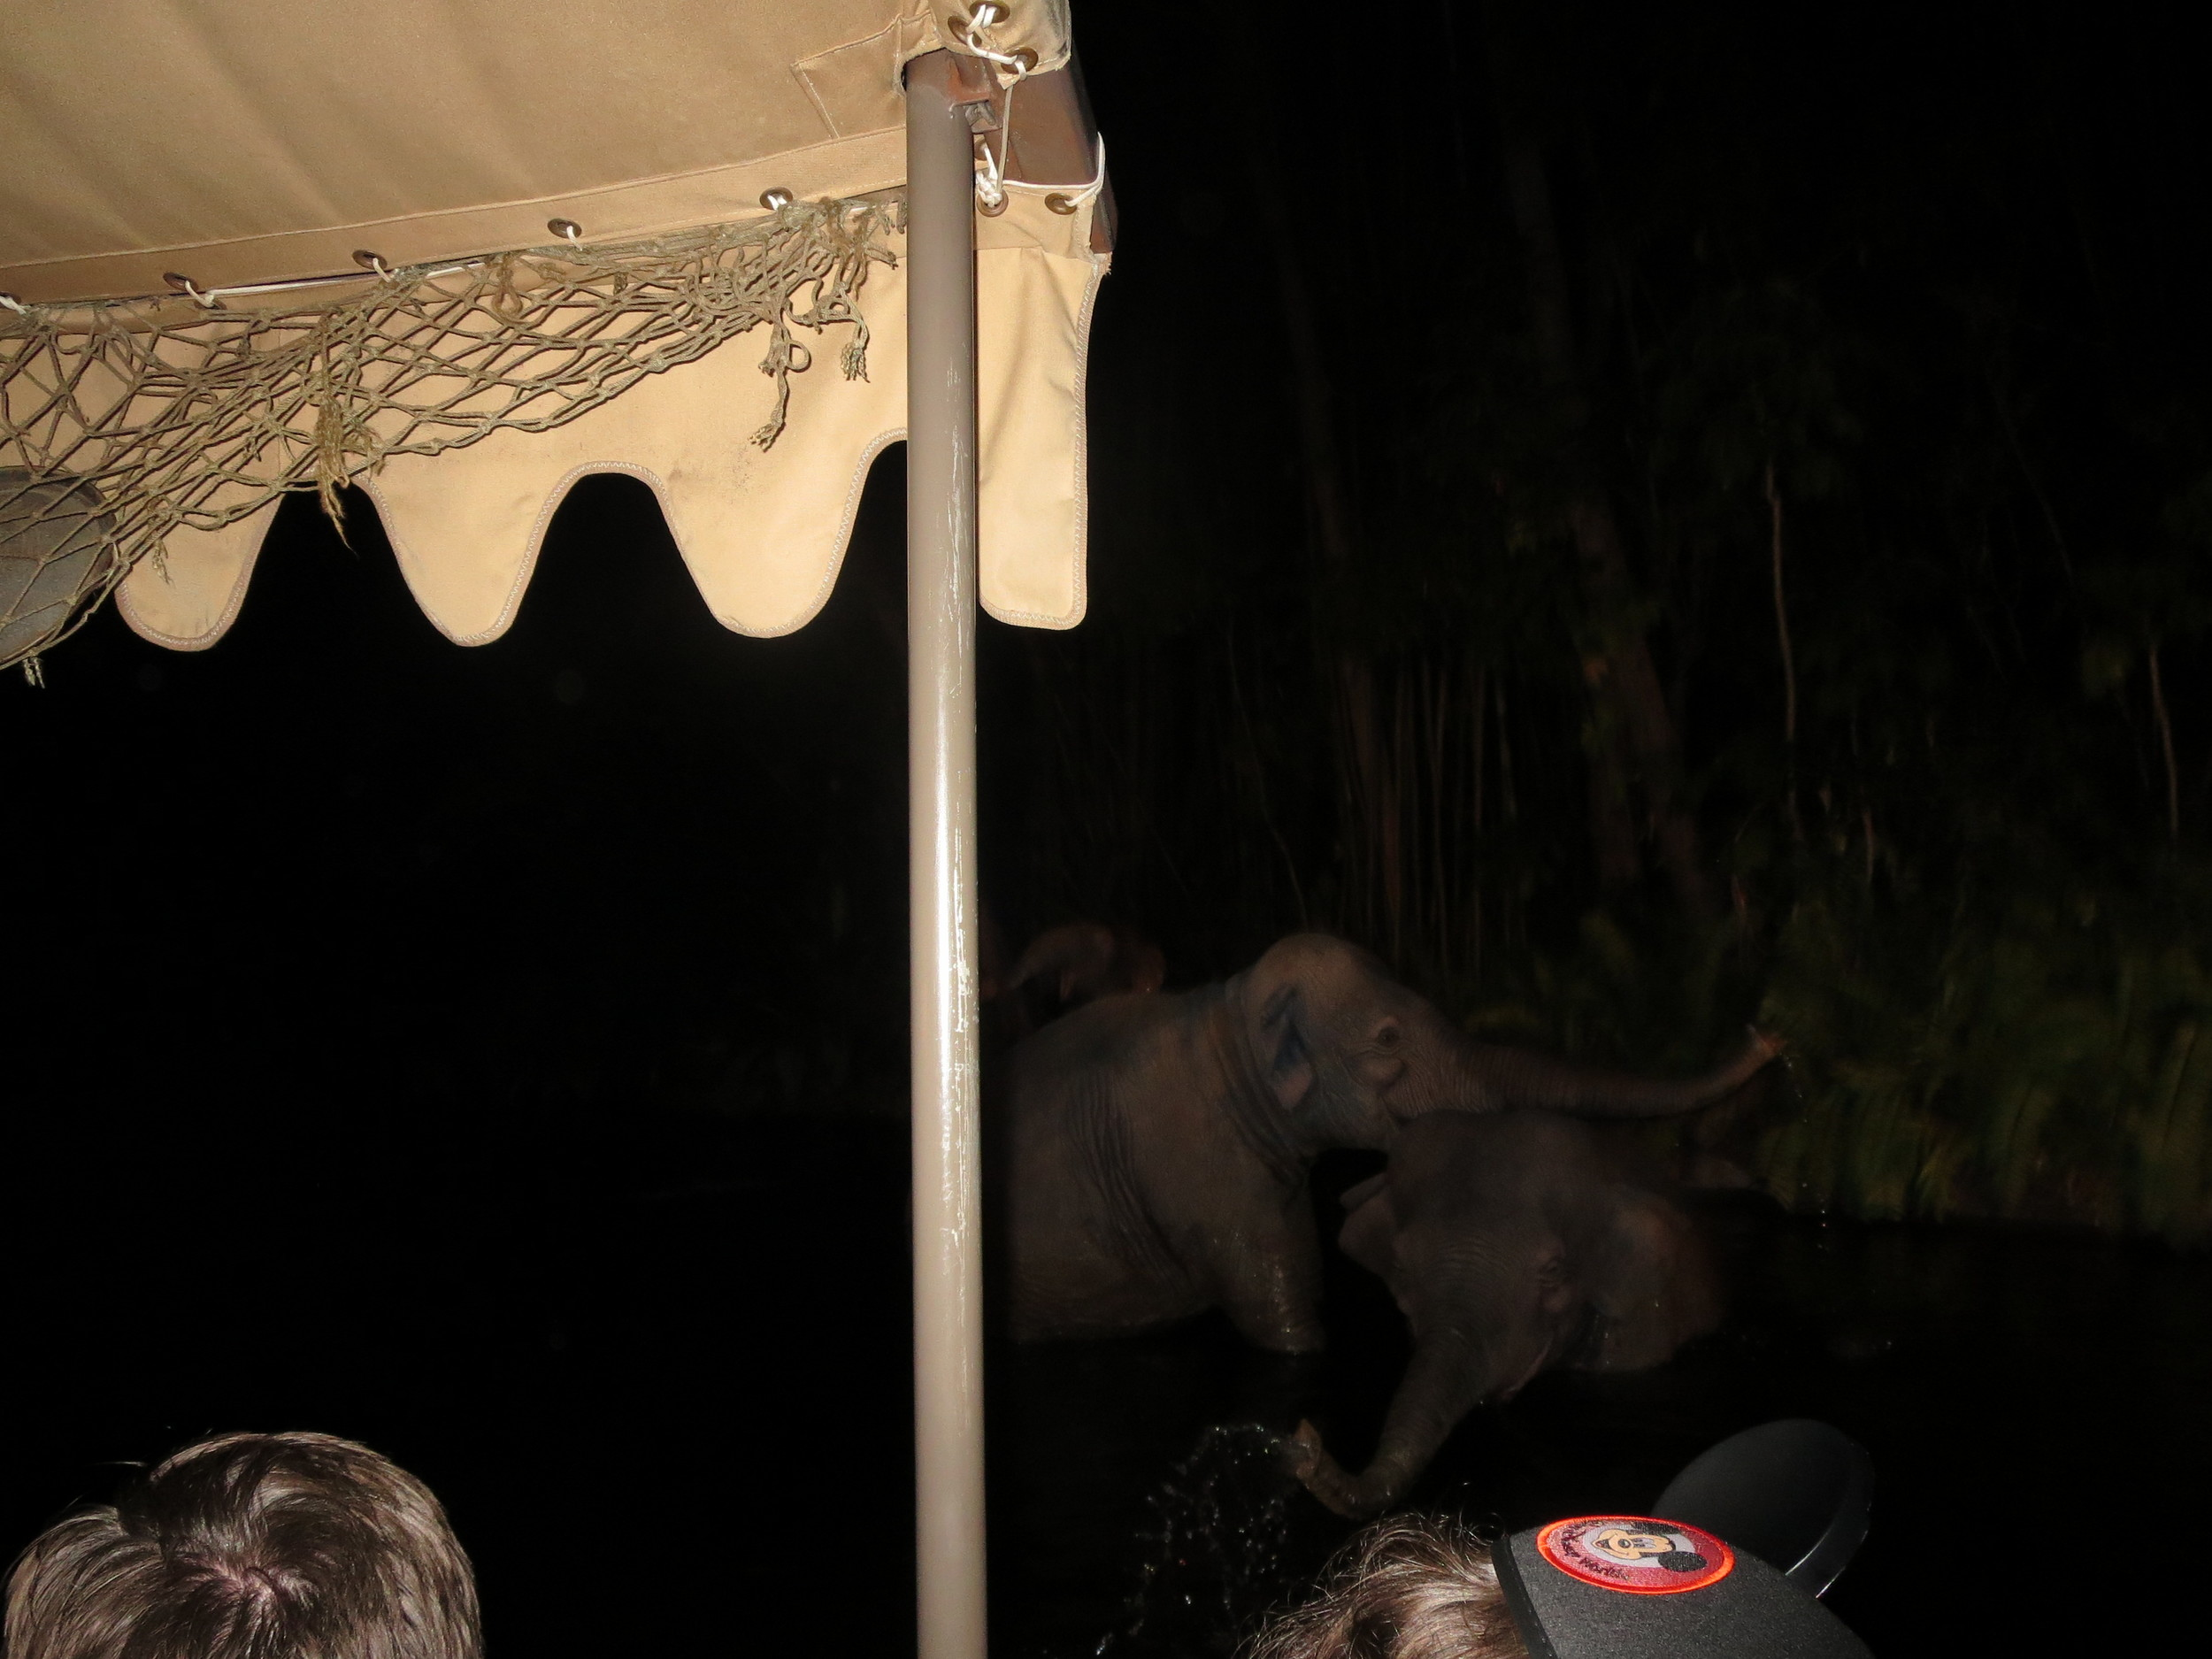 3:30 AM on the Jungle Cruise with a lot of devoted Disney fans